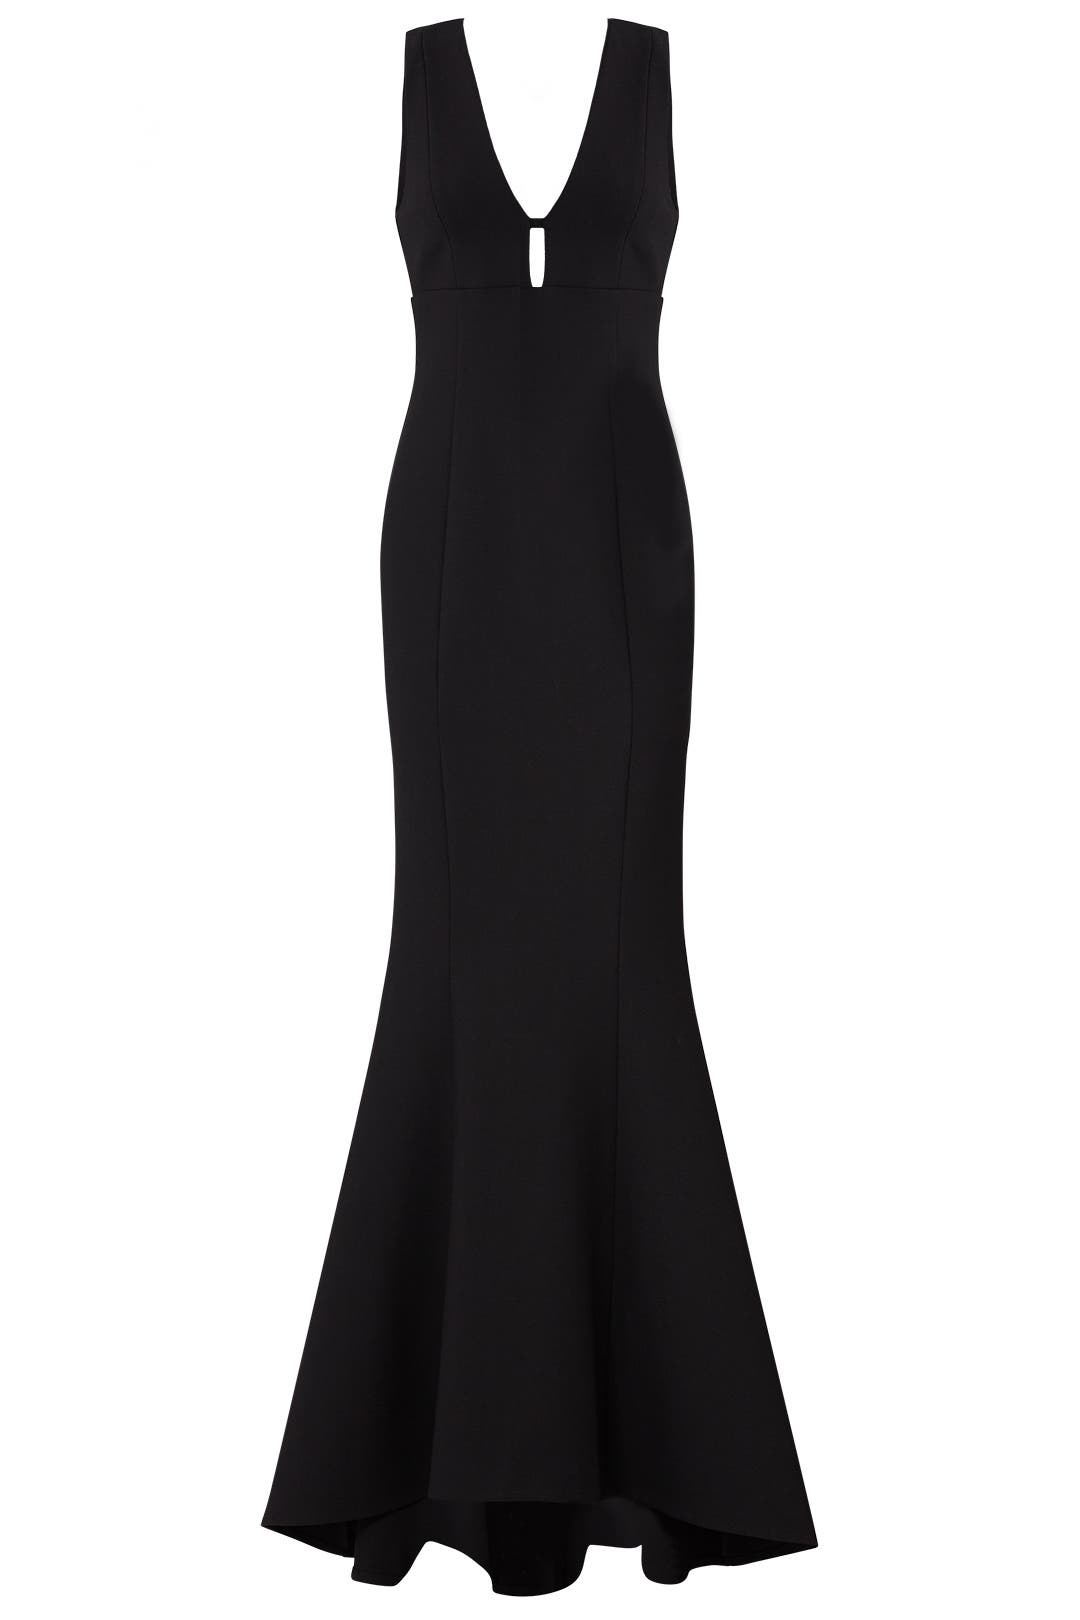 Black Albury Gown by LIKELY for $50 - $70 | Rent the Runway